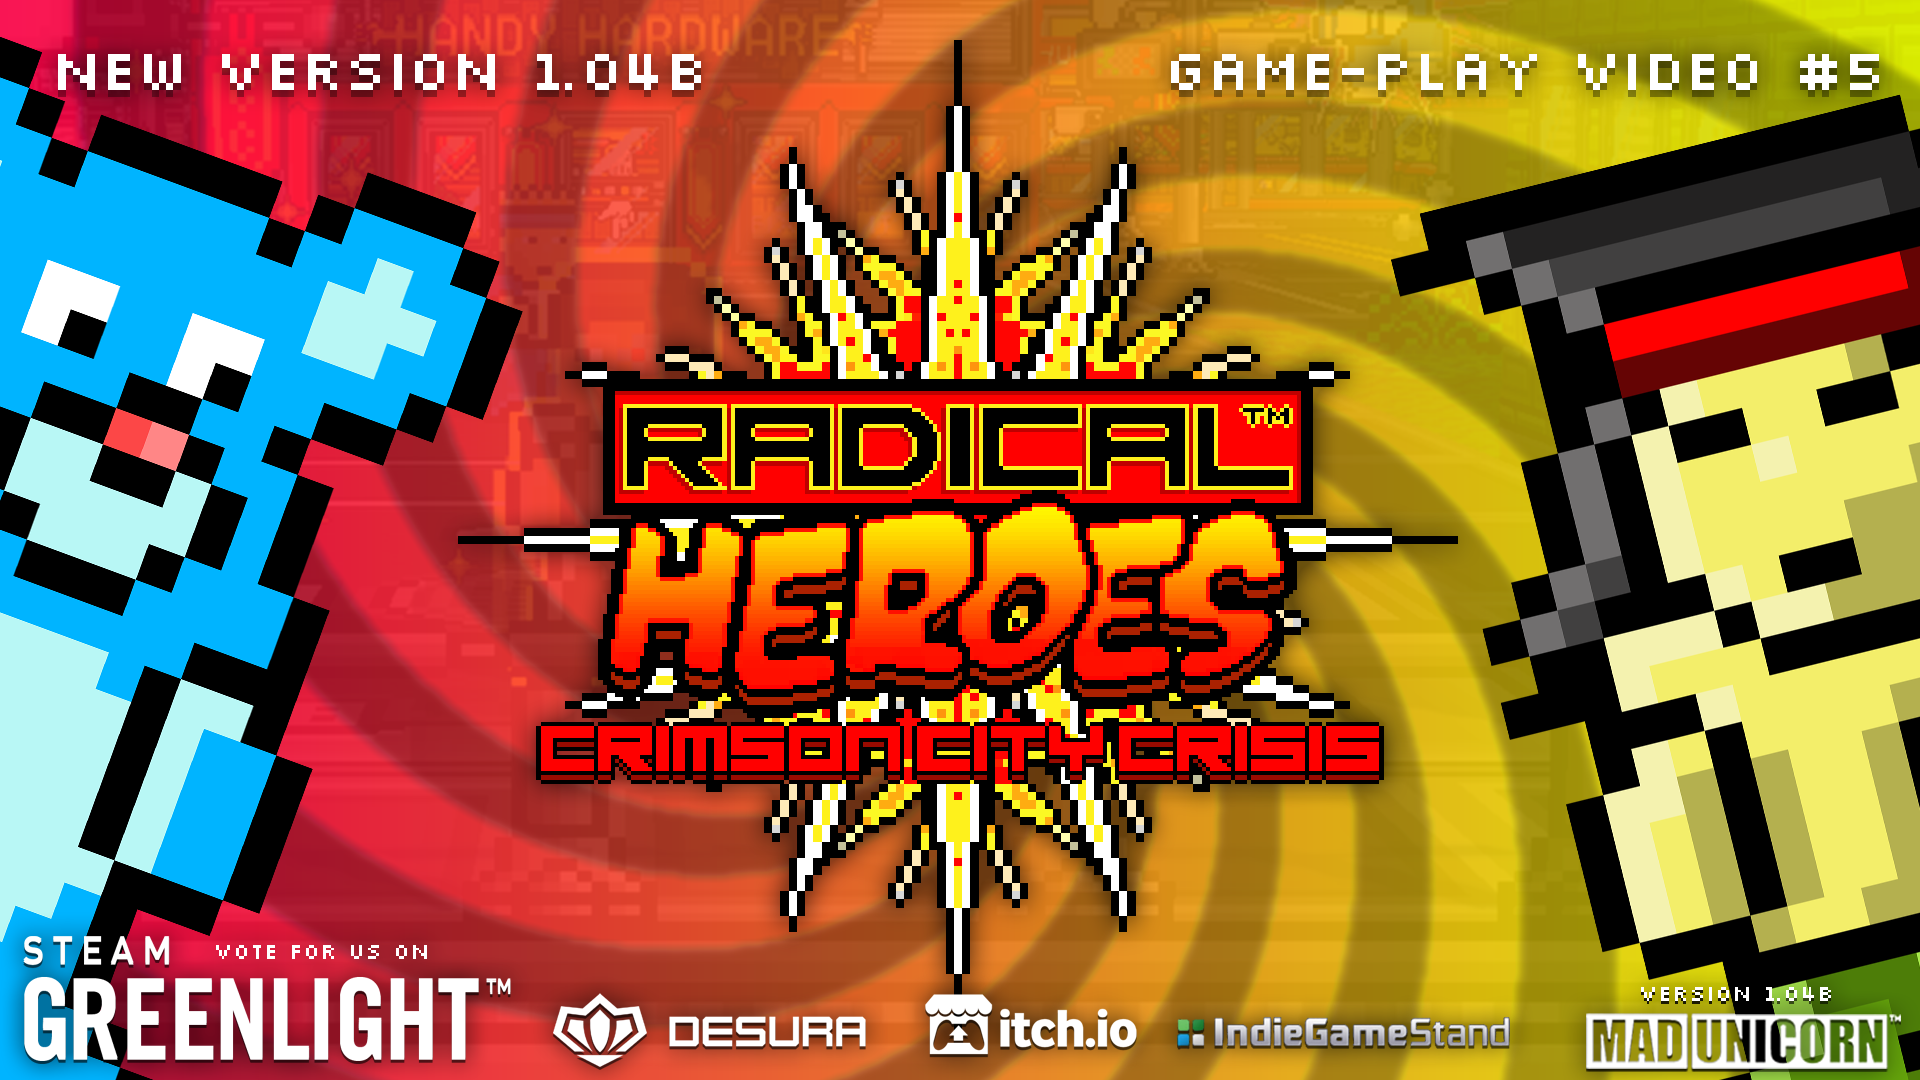 "RADICAL HEROES Ver 1.04b + INDIE ROYALE ""?"" GAME IS US!"